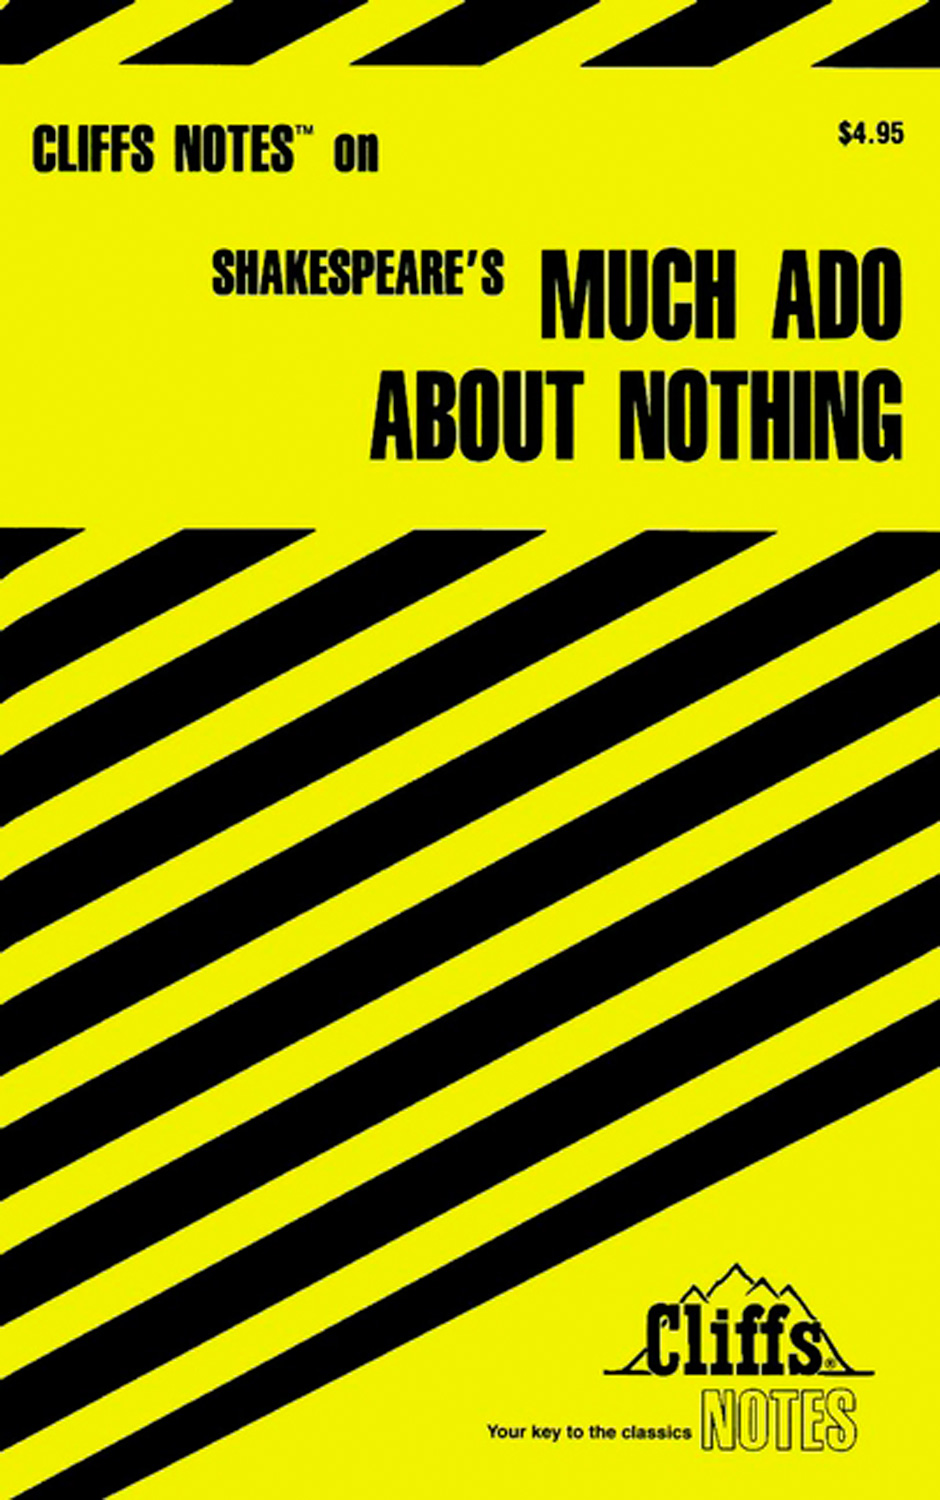 CliffsNotes on Shakespeare's Much Ado About Nothing-9780764585050